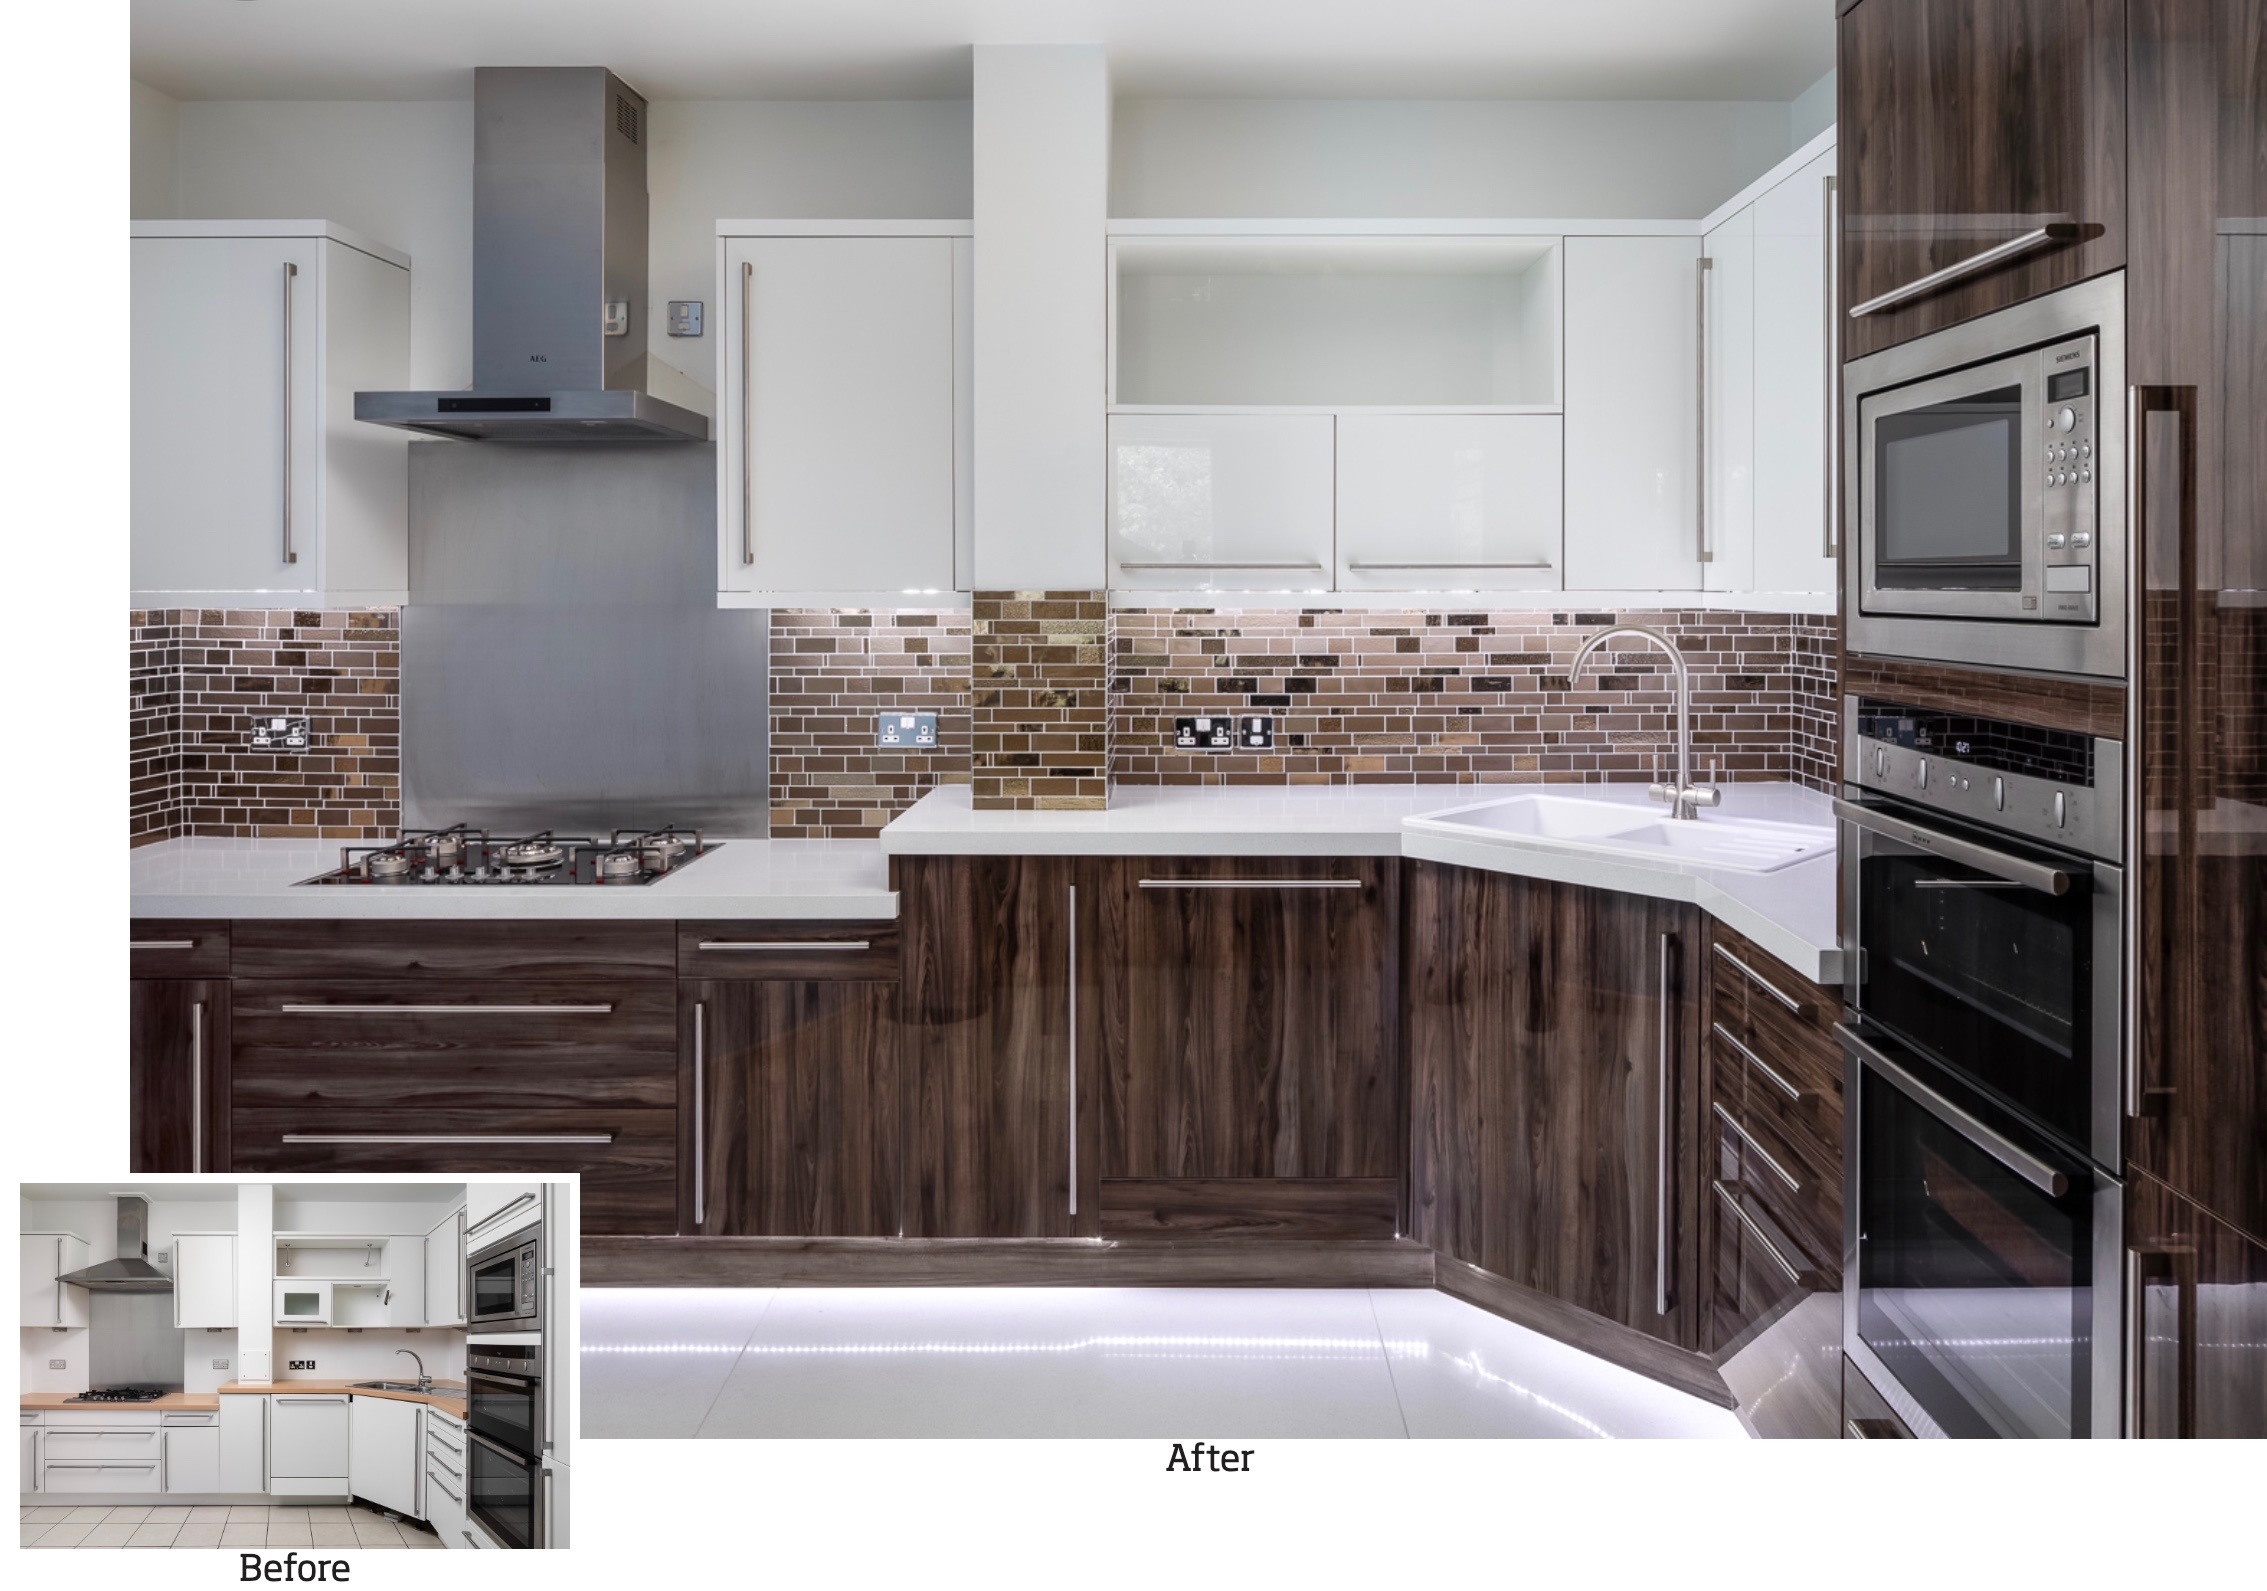 Quality Repacement Kitchen Doors - Visit Our Showroom In Bolton